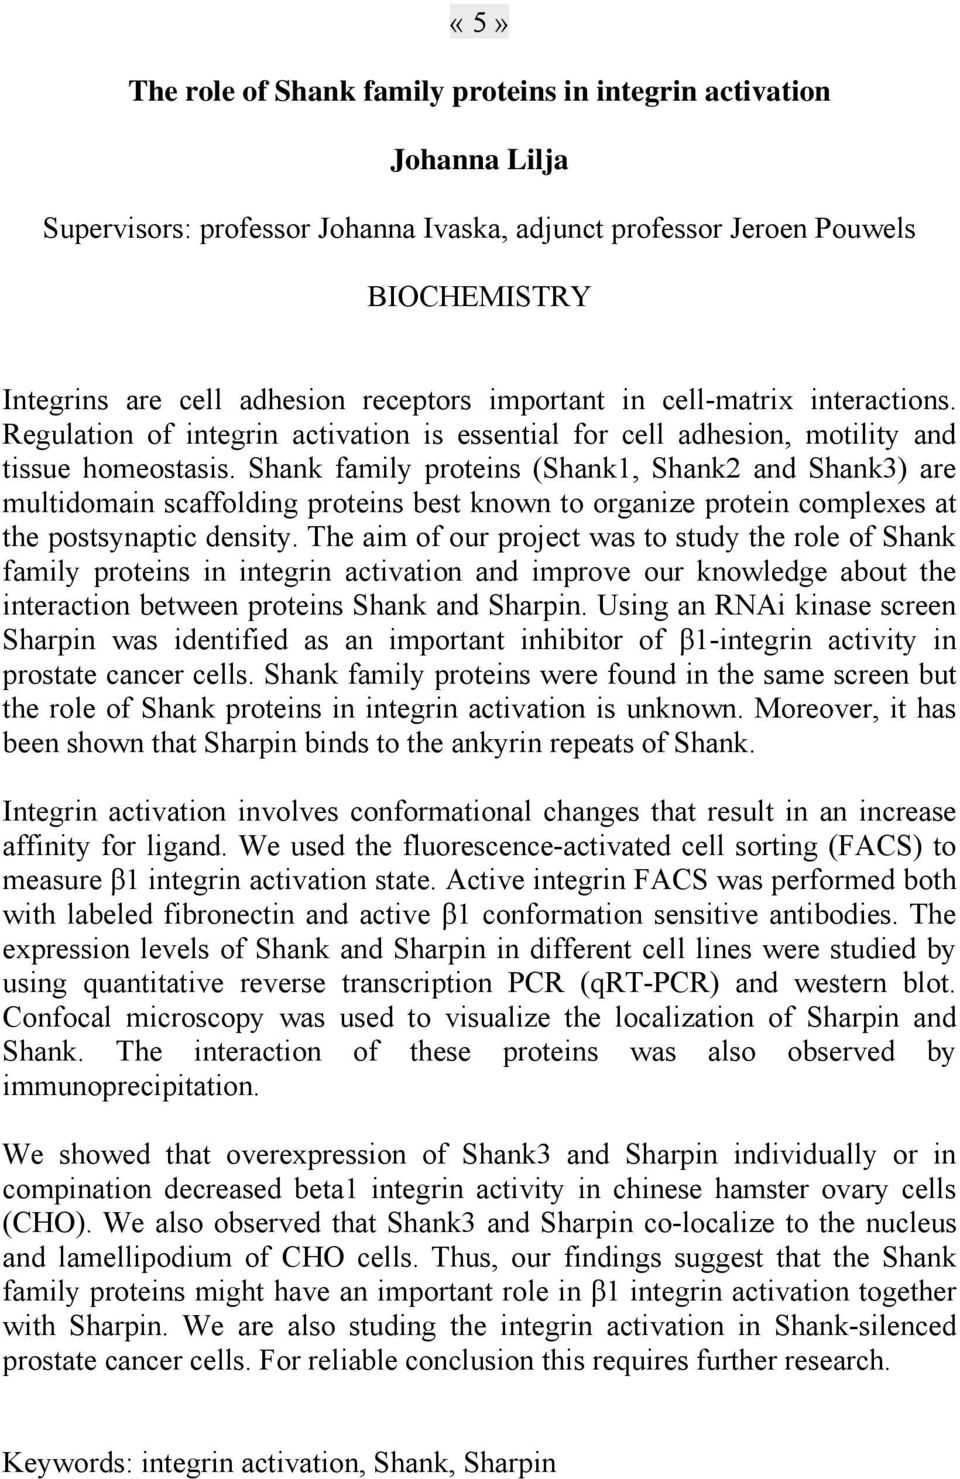 Shank family proteins (Shank1, Shank2 and Shank3) are multidomain scaffolding proteins best known to organize protein complexes at the postsynaptic density.